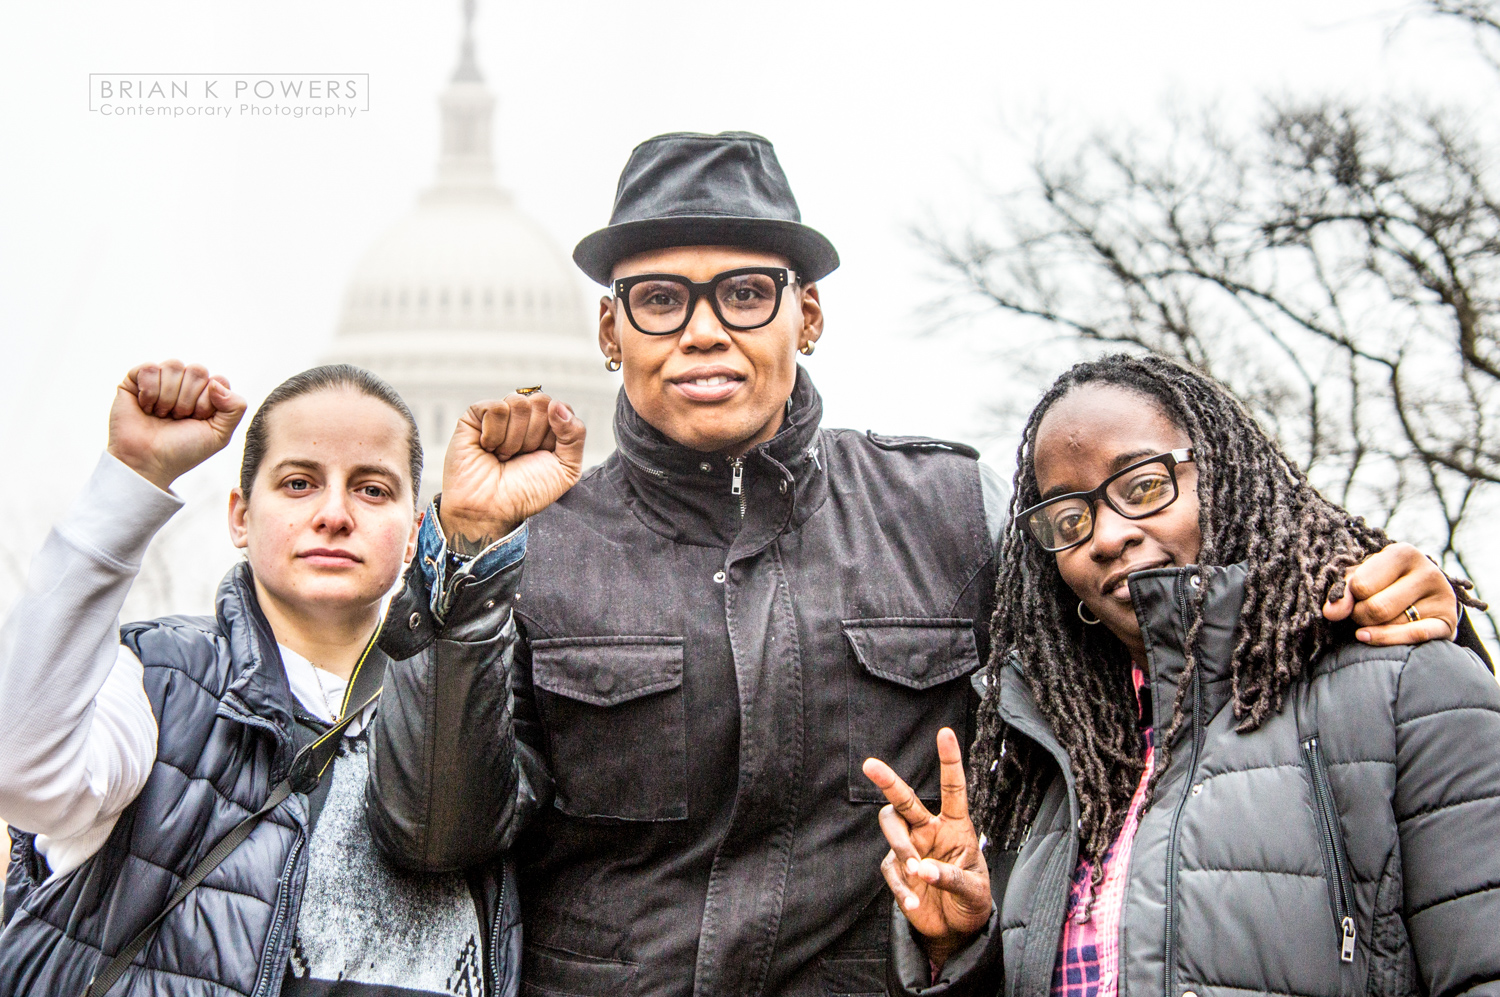 Womens-march-on-washington-2017-Brian-K-Powers-Photography-0075.jpg